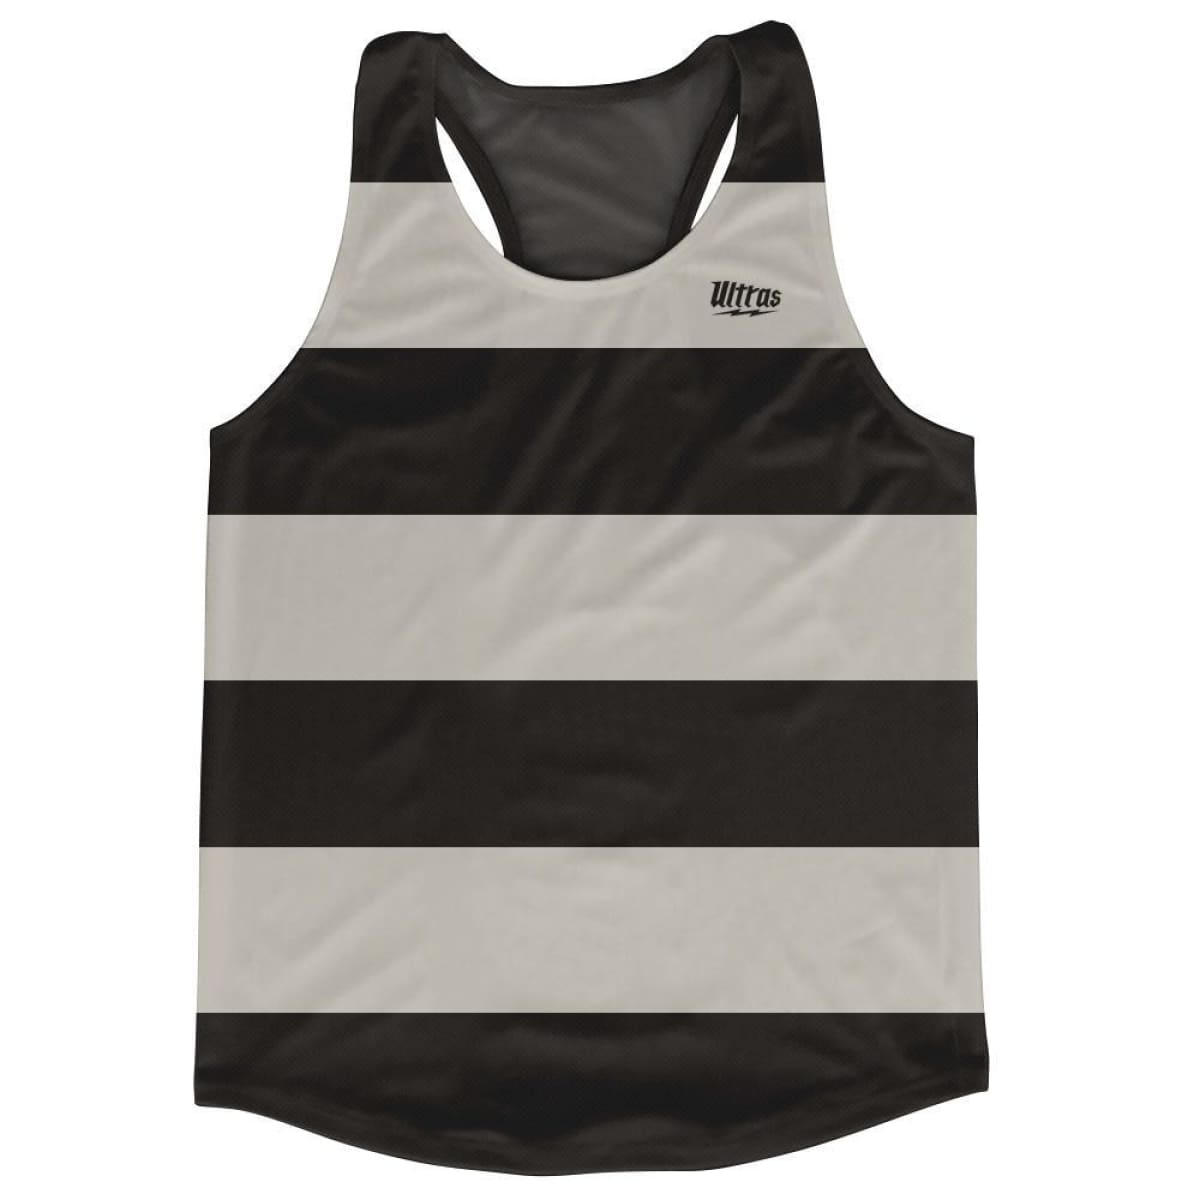 Cool Grey Striped Running Tank Top Racerback Track and Cross Country Singlet Jersey - Cool Grey / Adult X-Small - Running Top